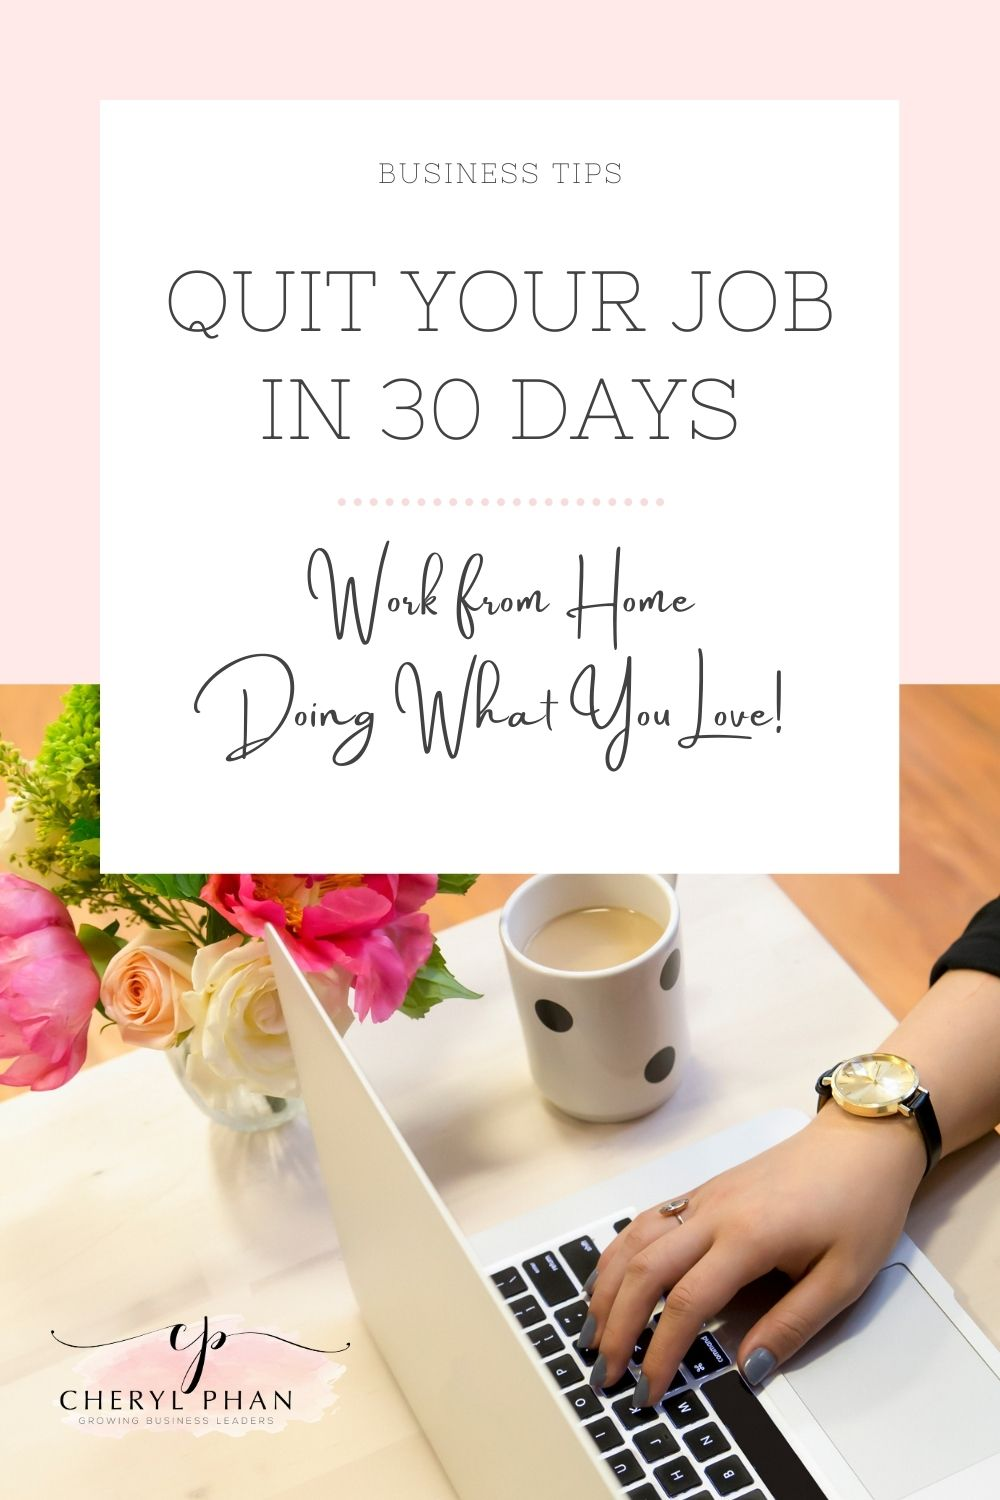 Quit your job in 30 days